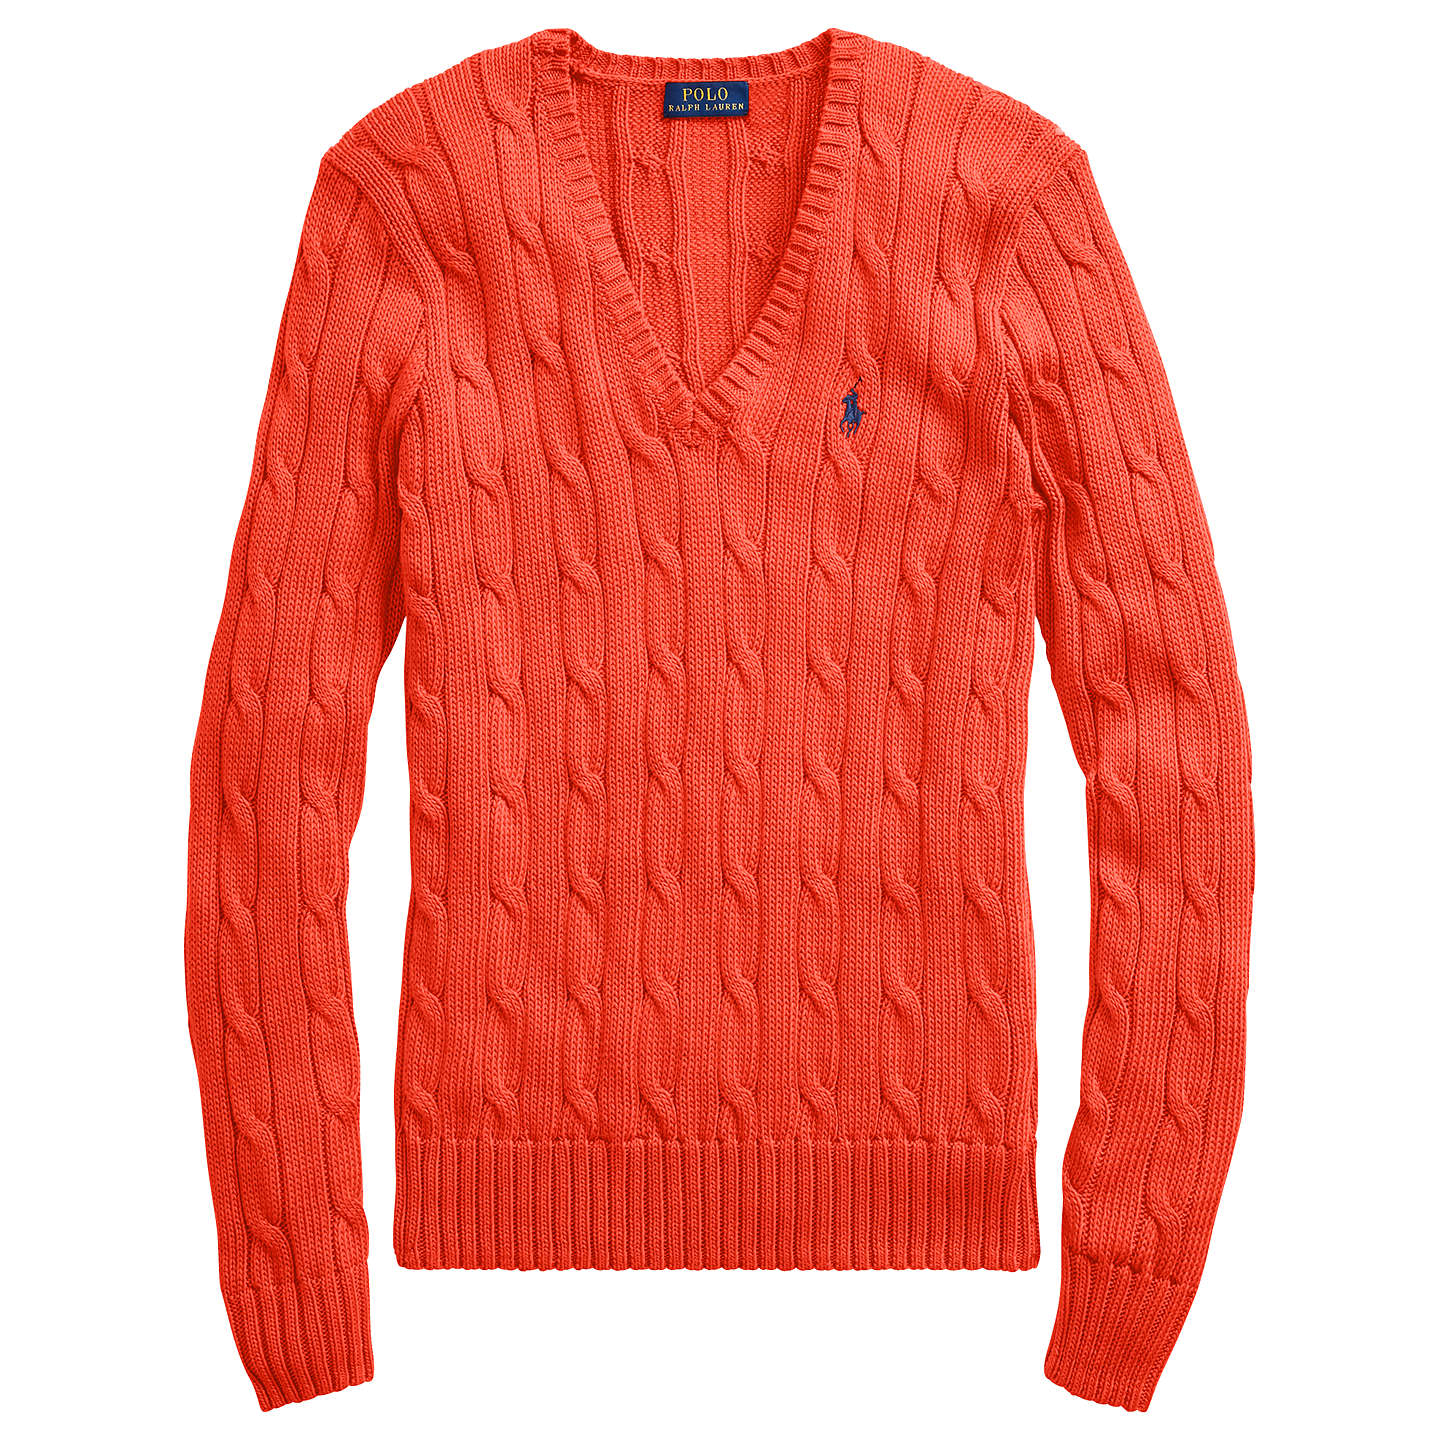 BuyPolo Ralph Lauren Kimberly Cotton Cable Jumper, Tomato, XS Online at johnlewis.com